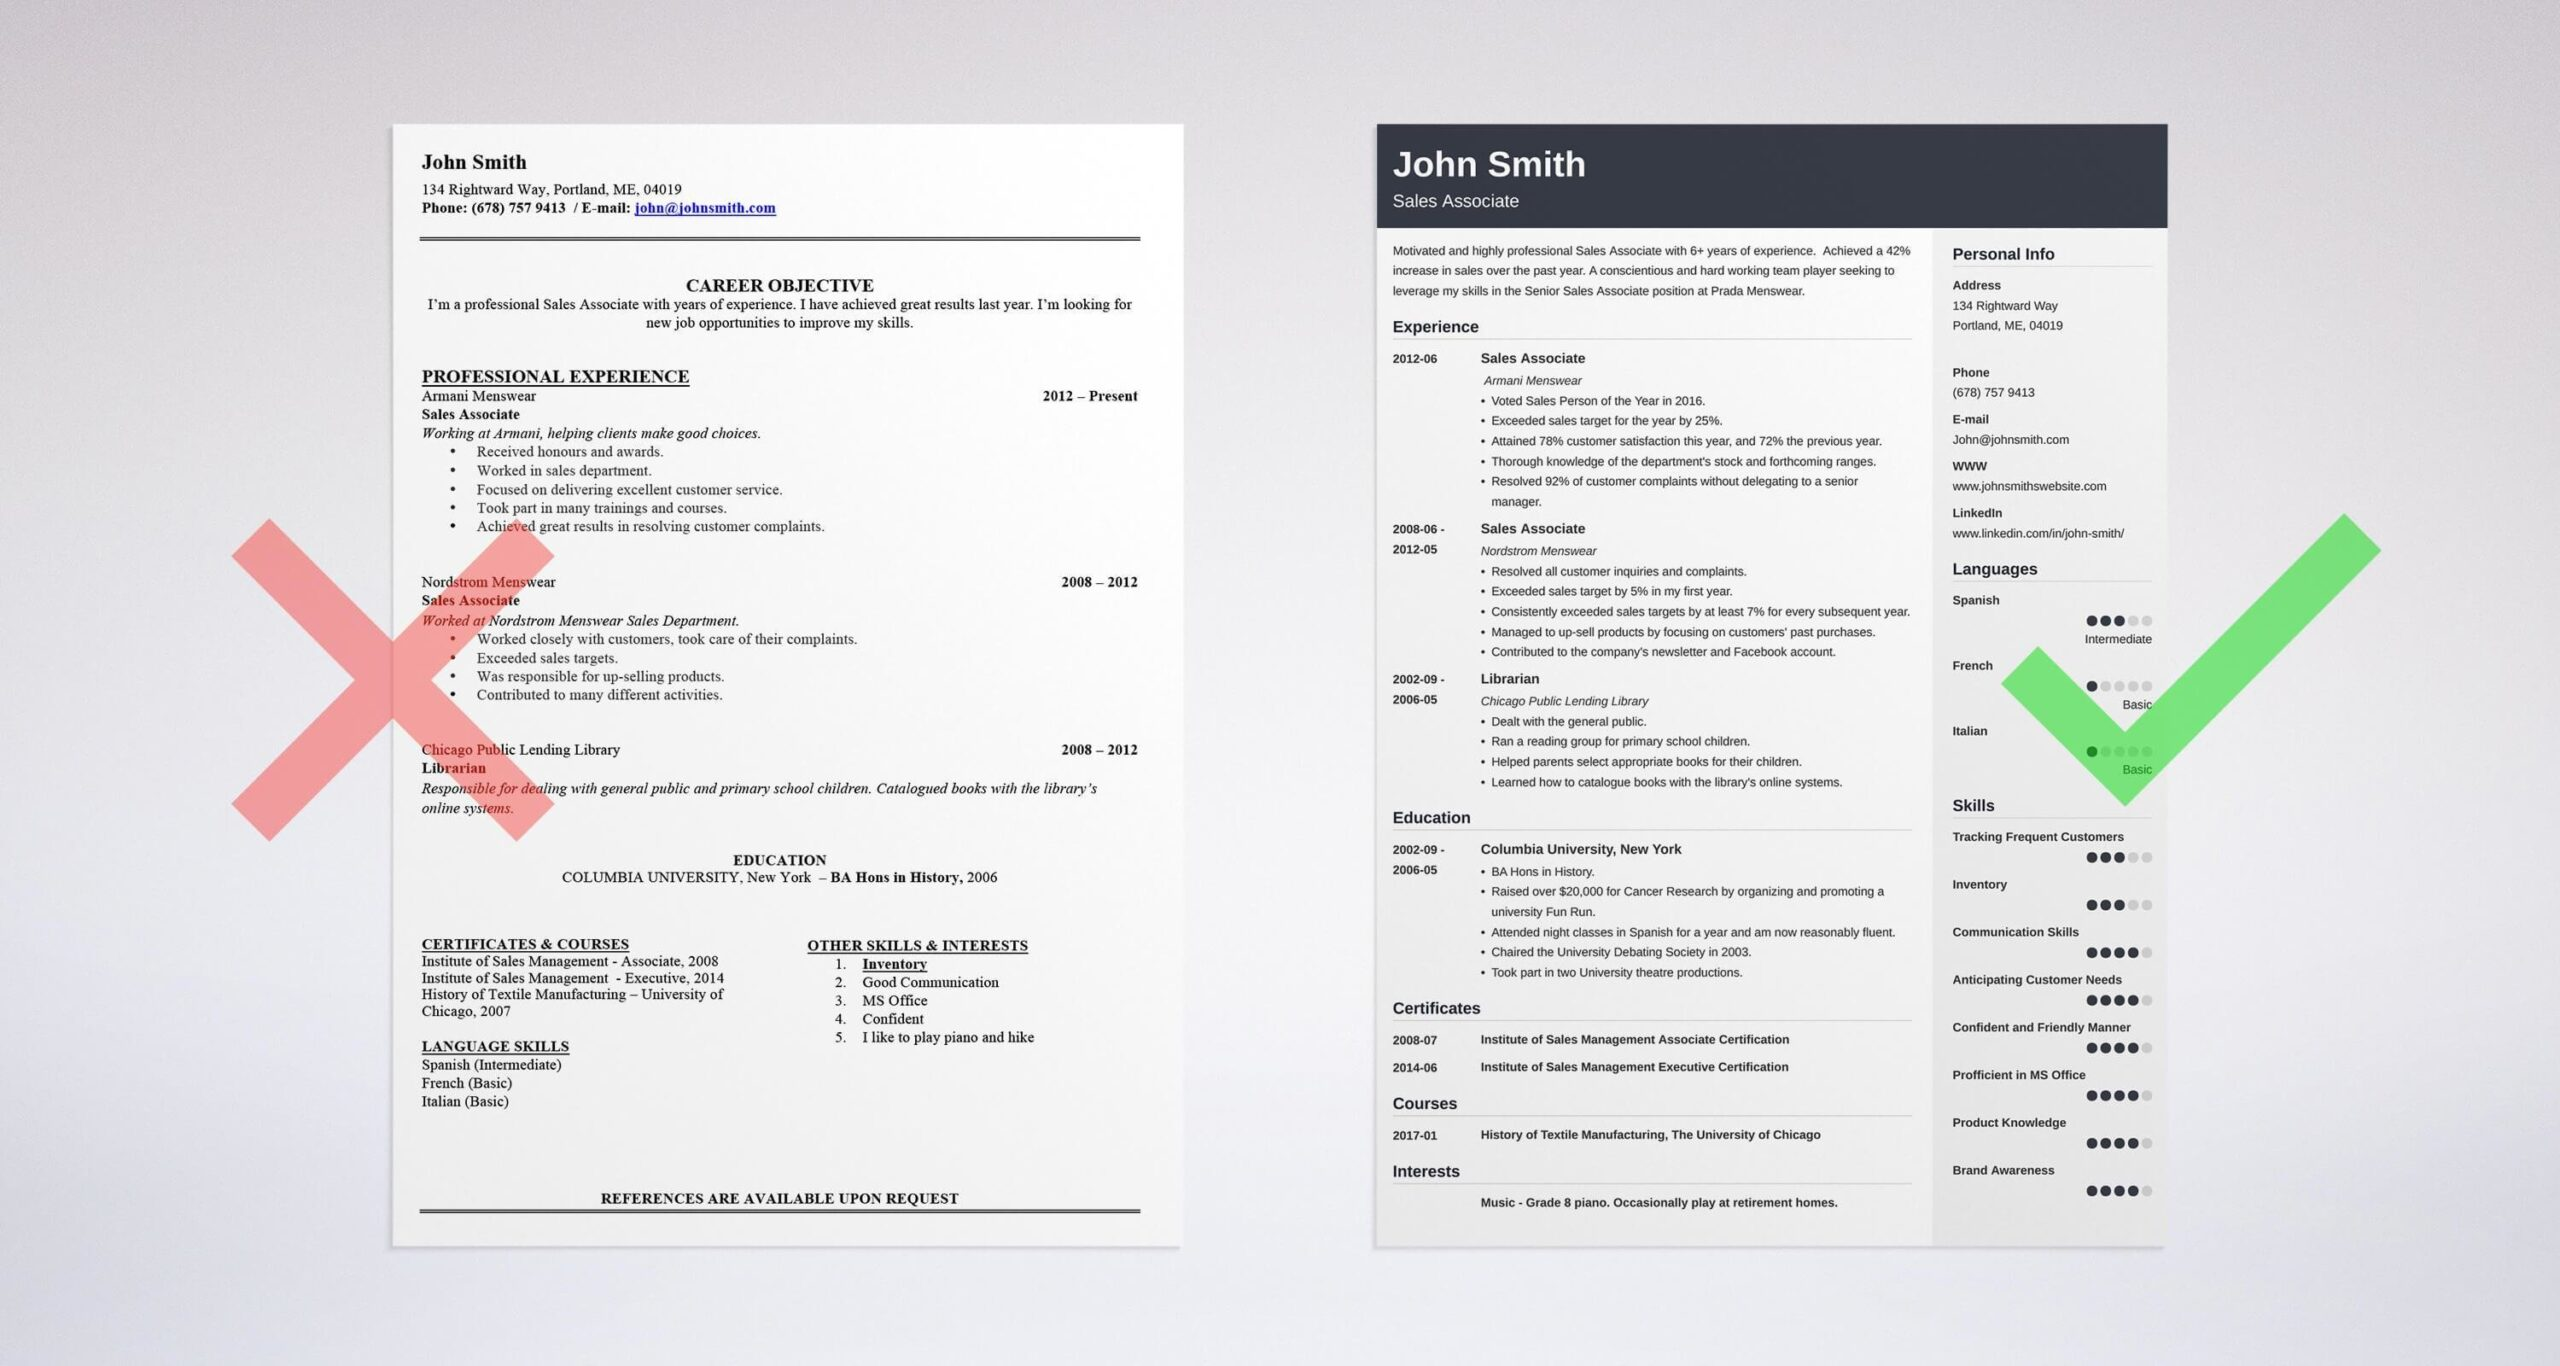 professional resume summary examples statements catchy titles example on template cubic Resume Catchy Resume Titles Example